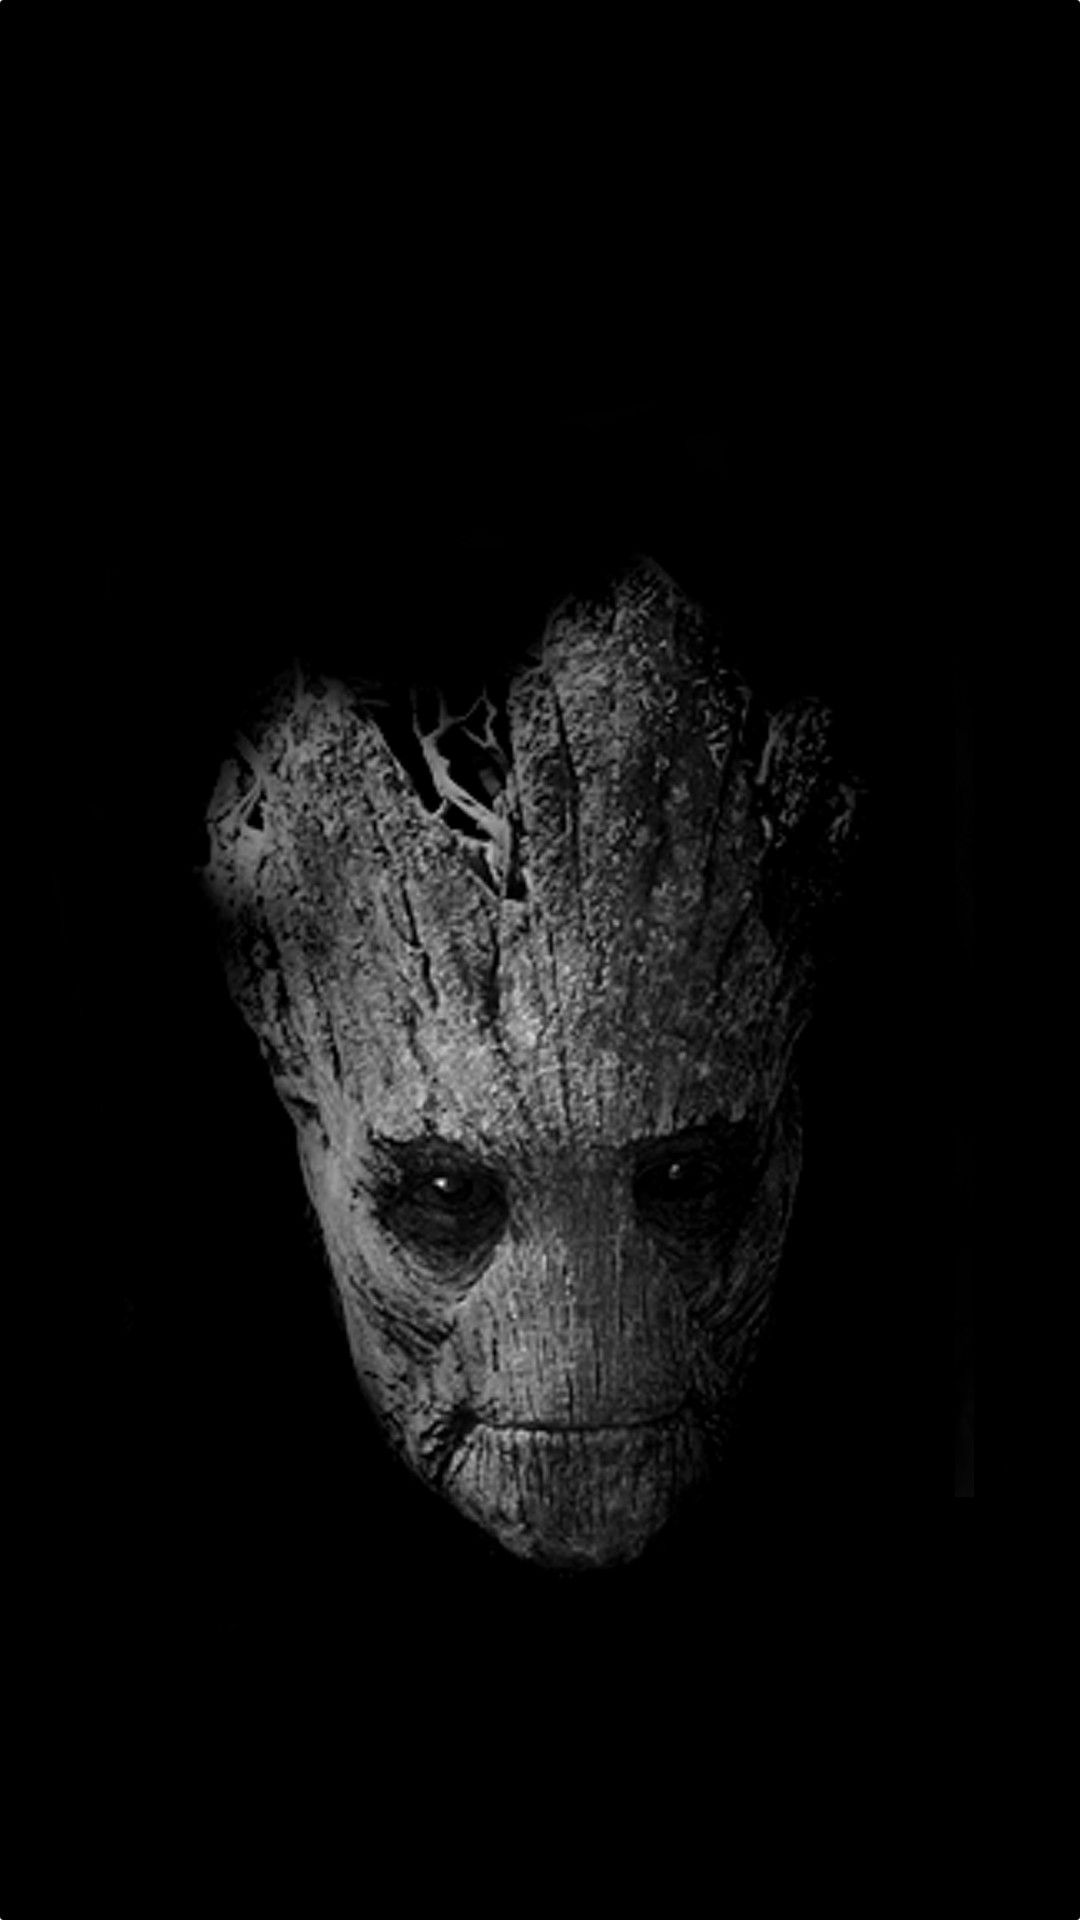 1080x1920 Download Iphone 6 Live Wallpaper Iphone 6 Plus Groot